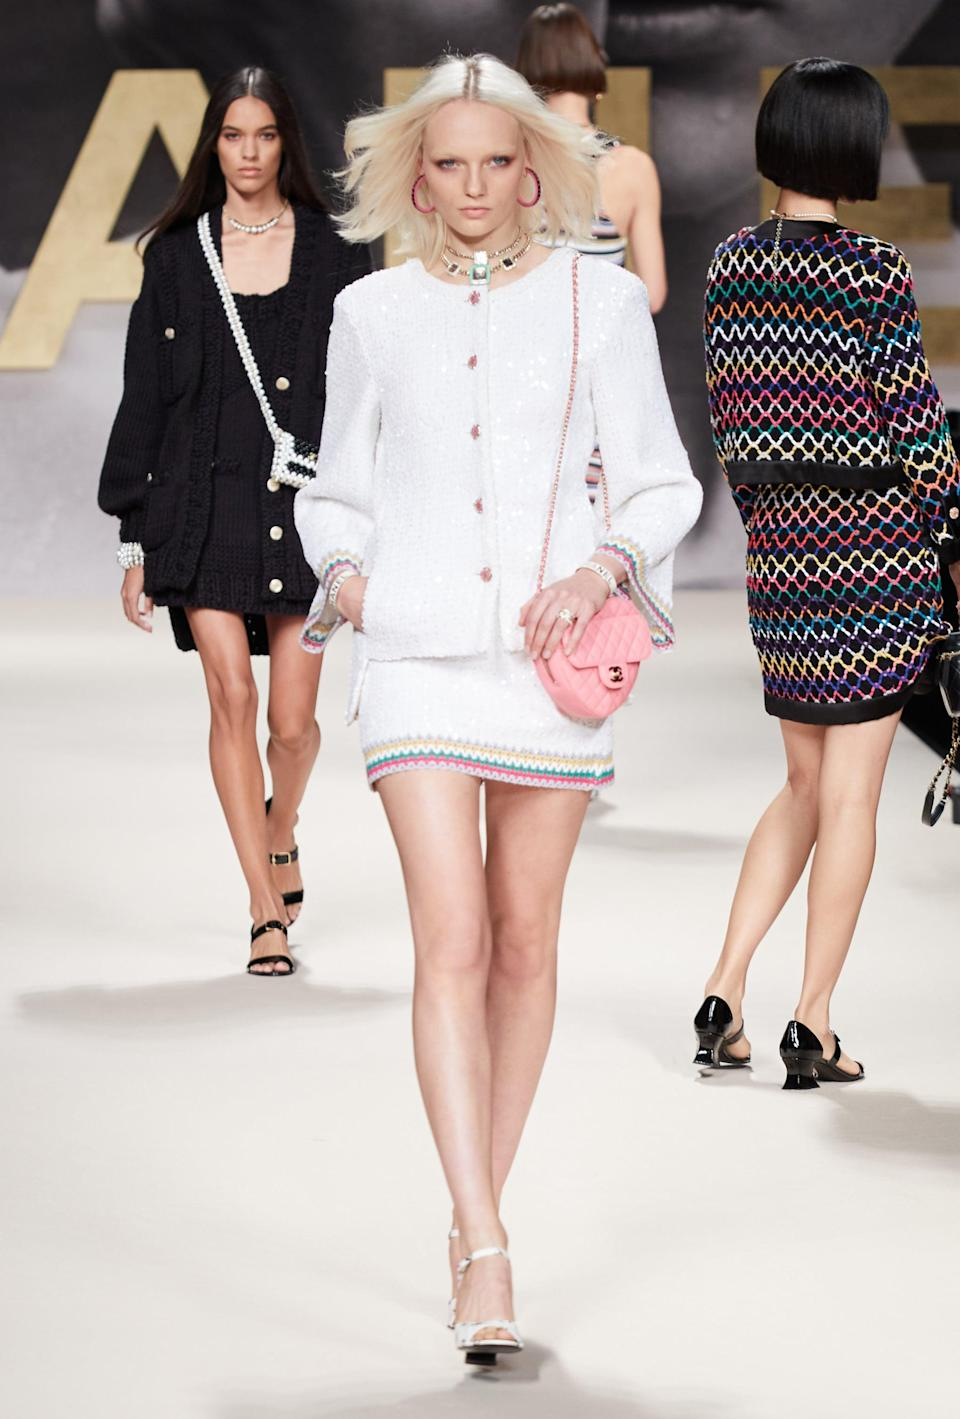 <p>The accessories are becoming increasingly exceptional as the show progresses.</p>